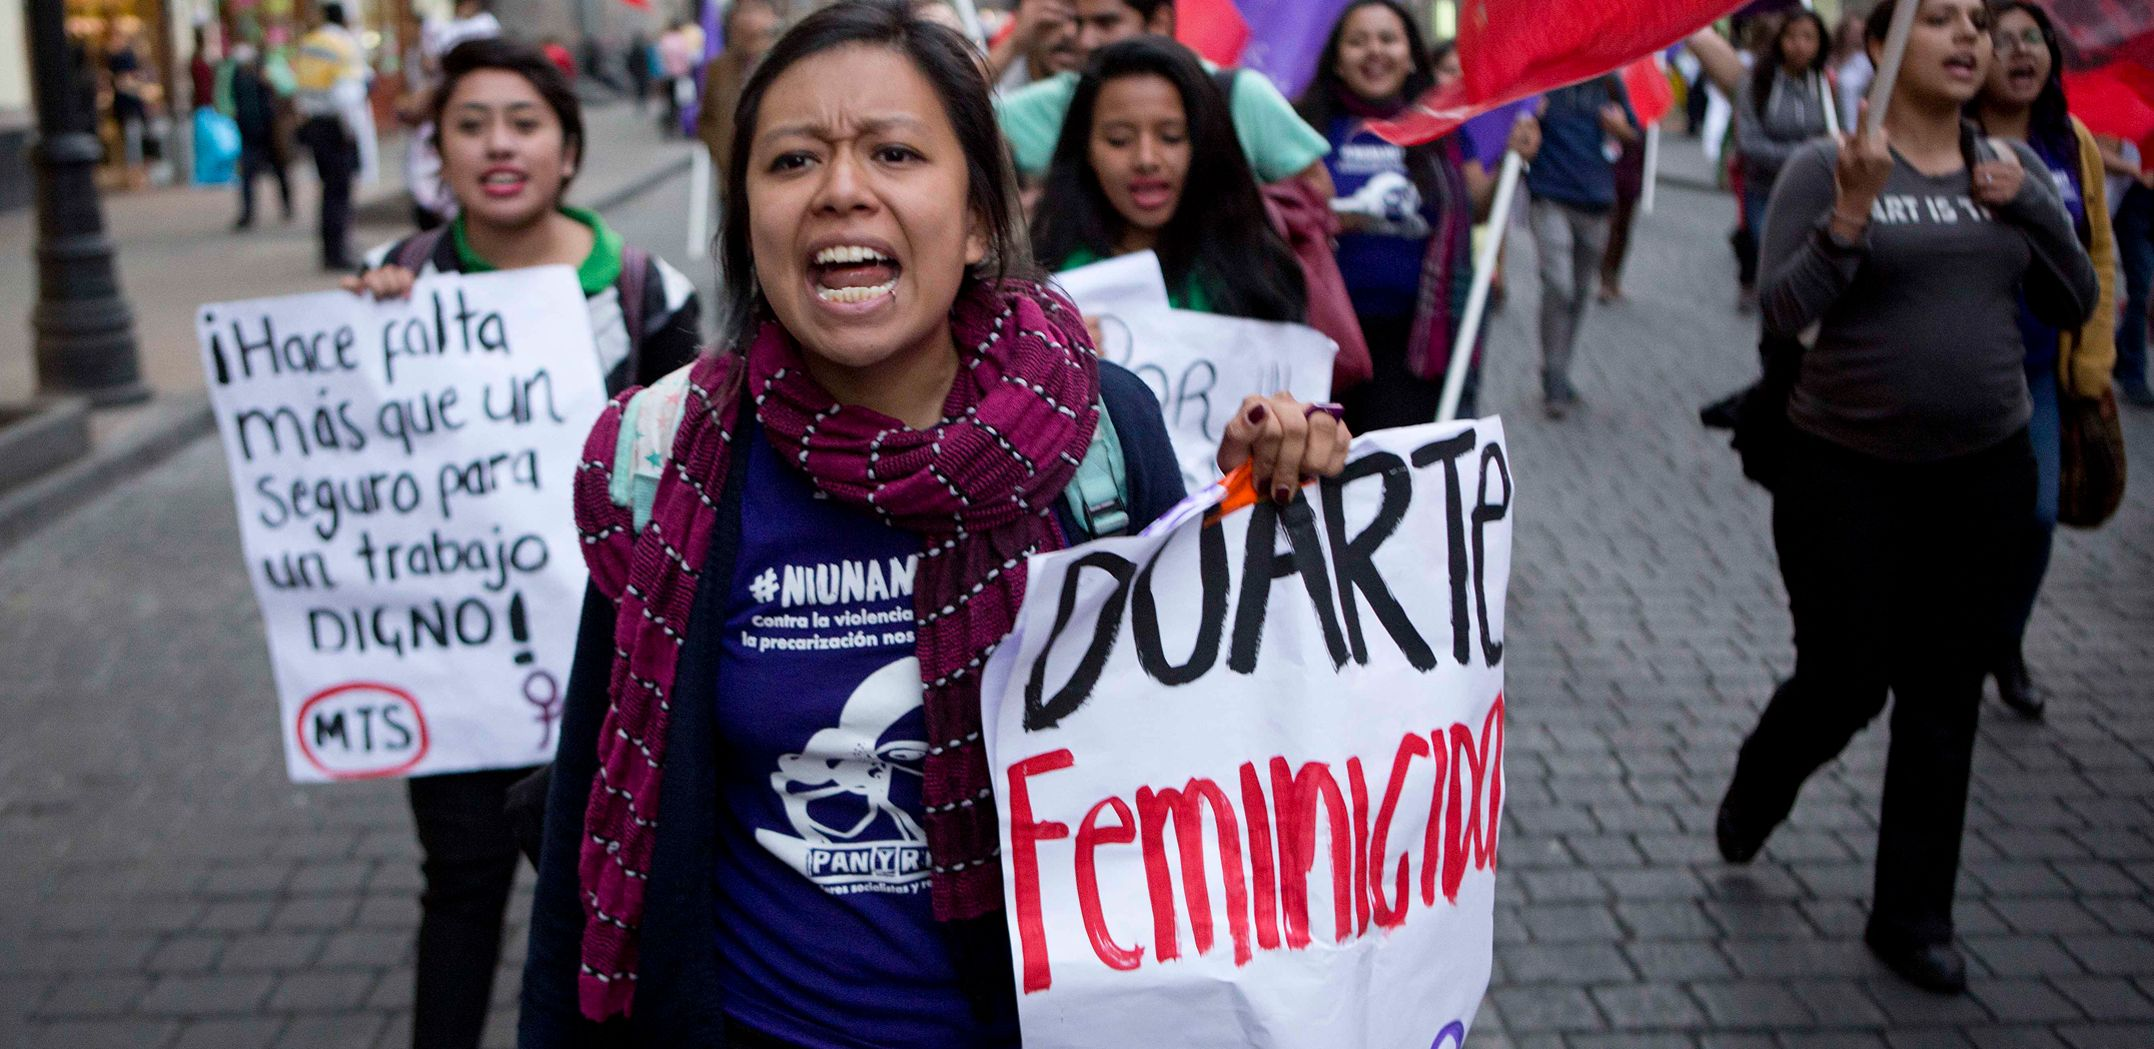 10 Countries are Hell Unsafe for Women, Check India's Position in the List